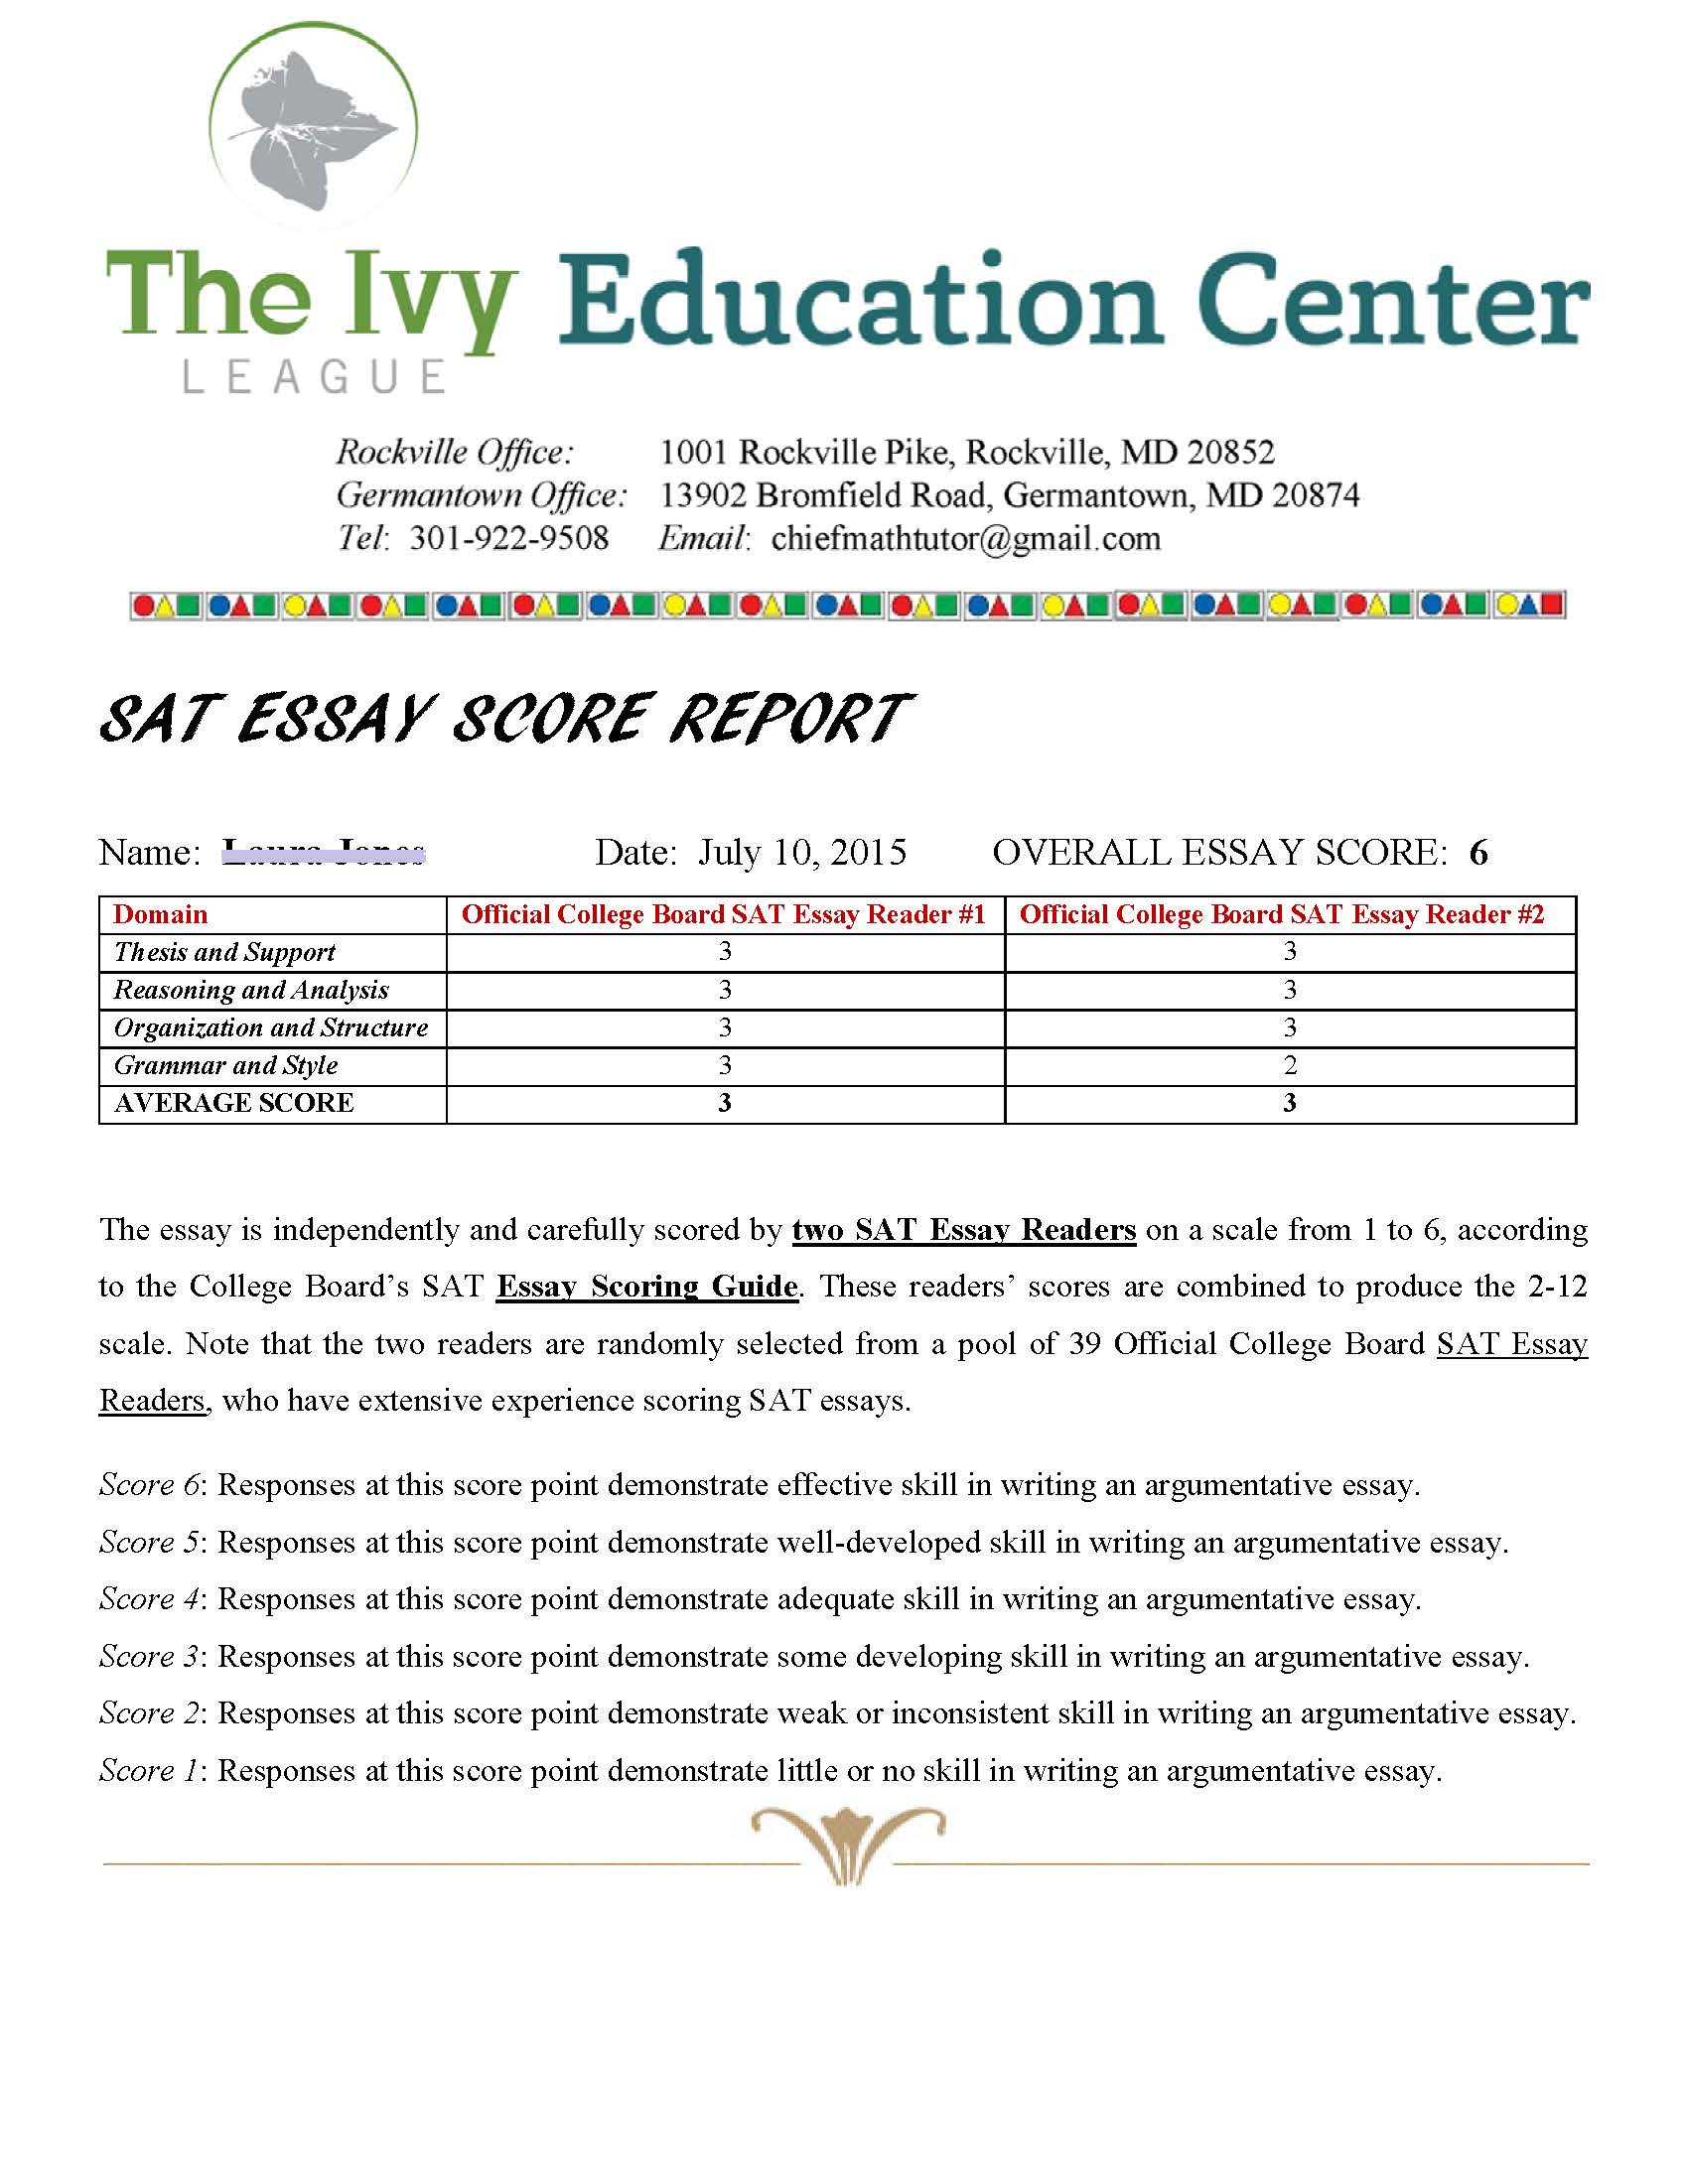 sat english prep ivy league education center sat essay score report sample1